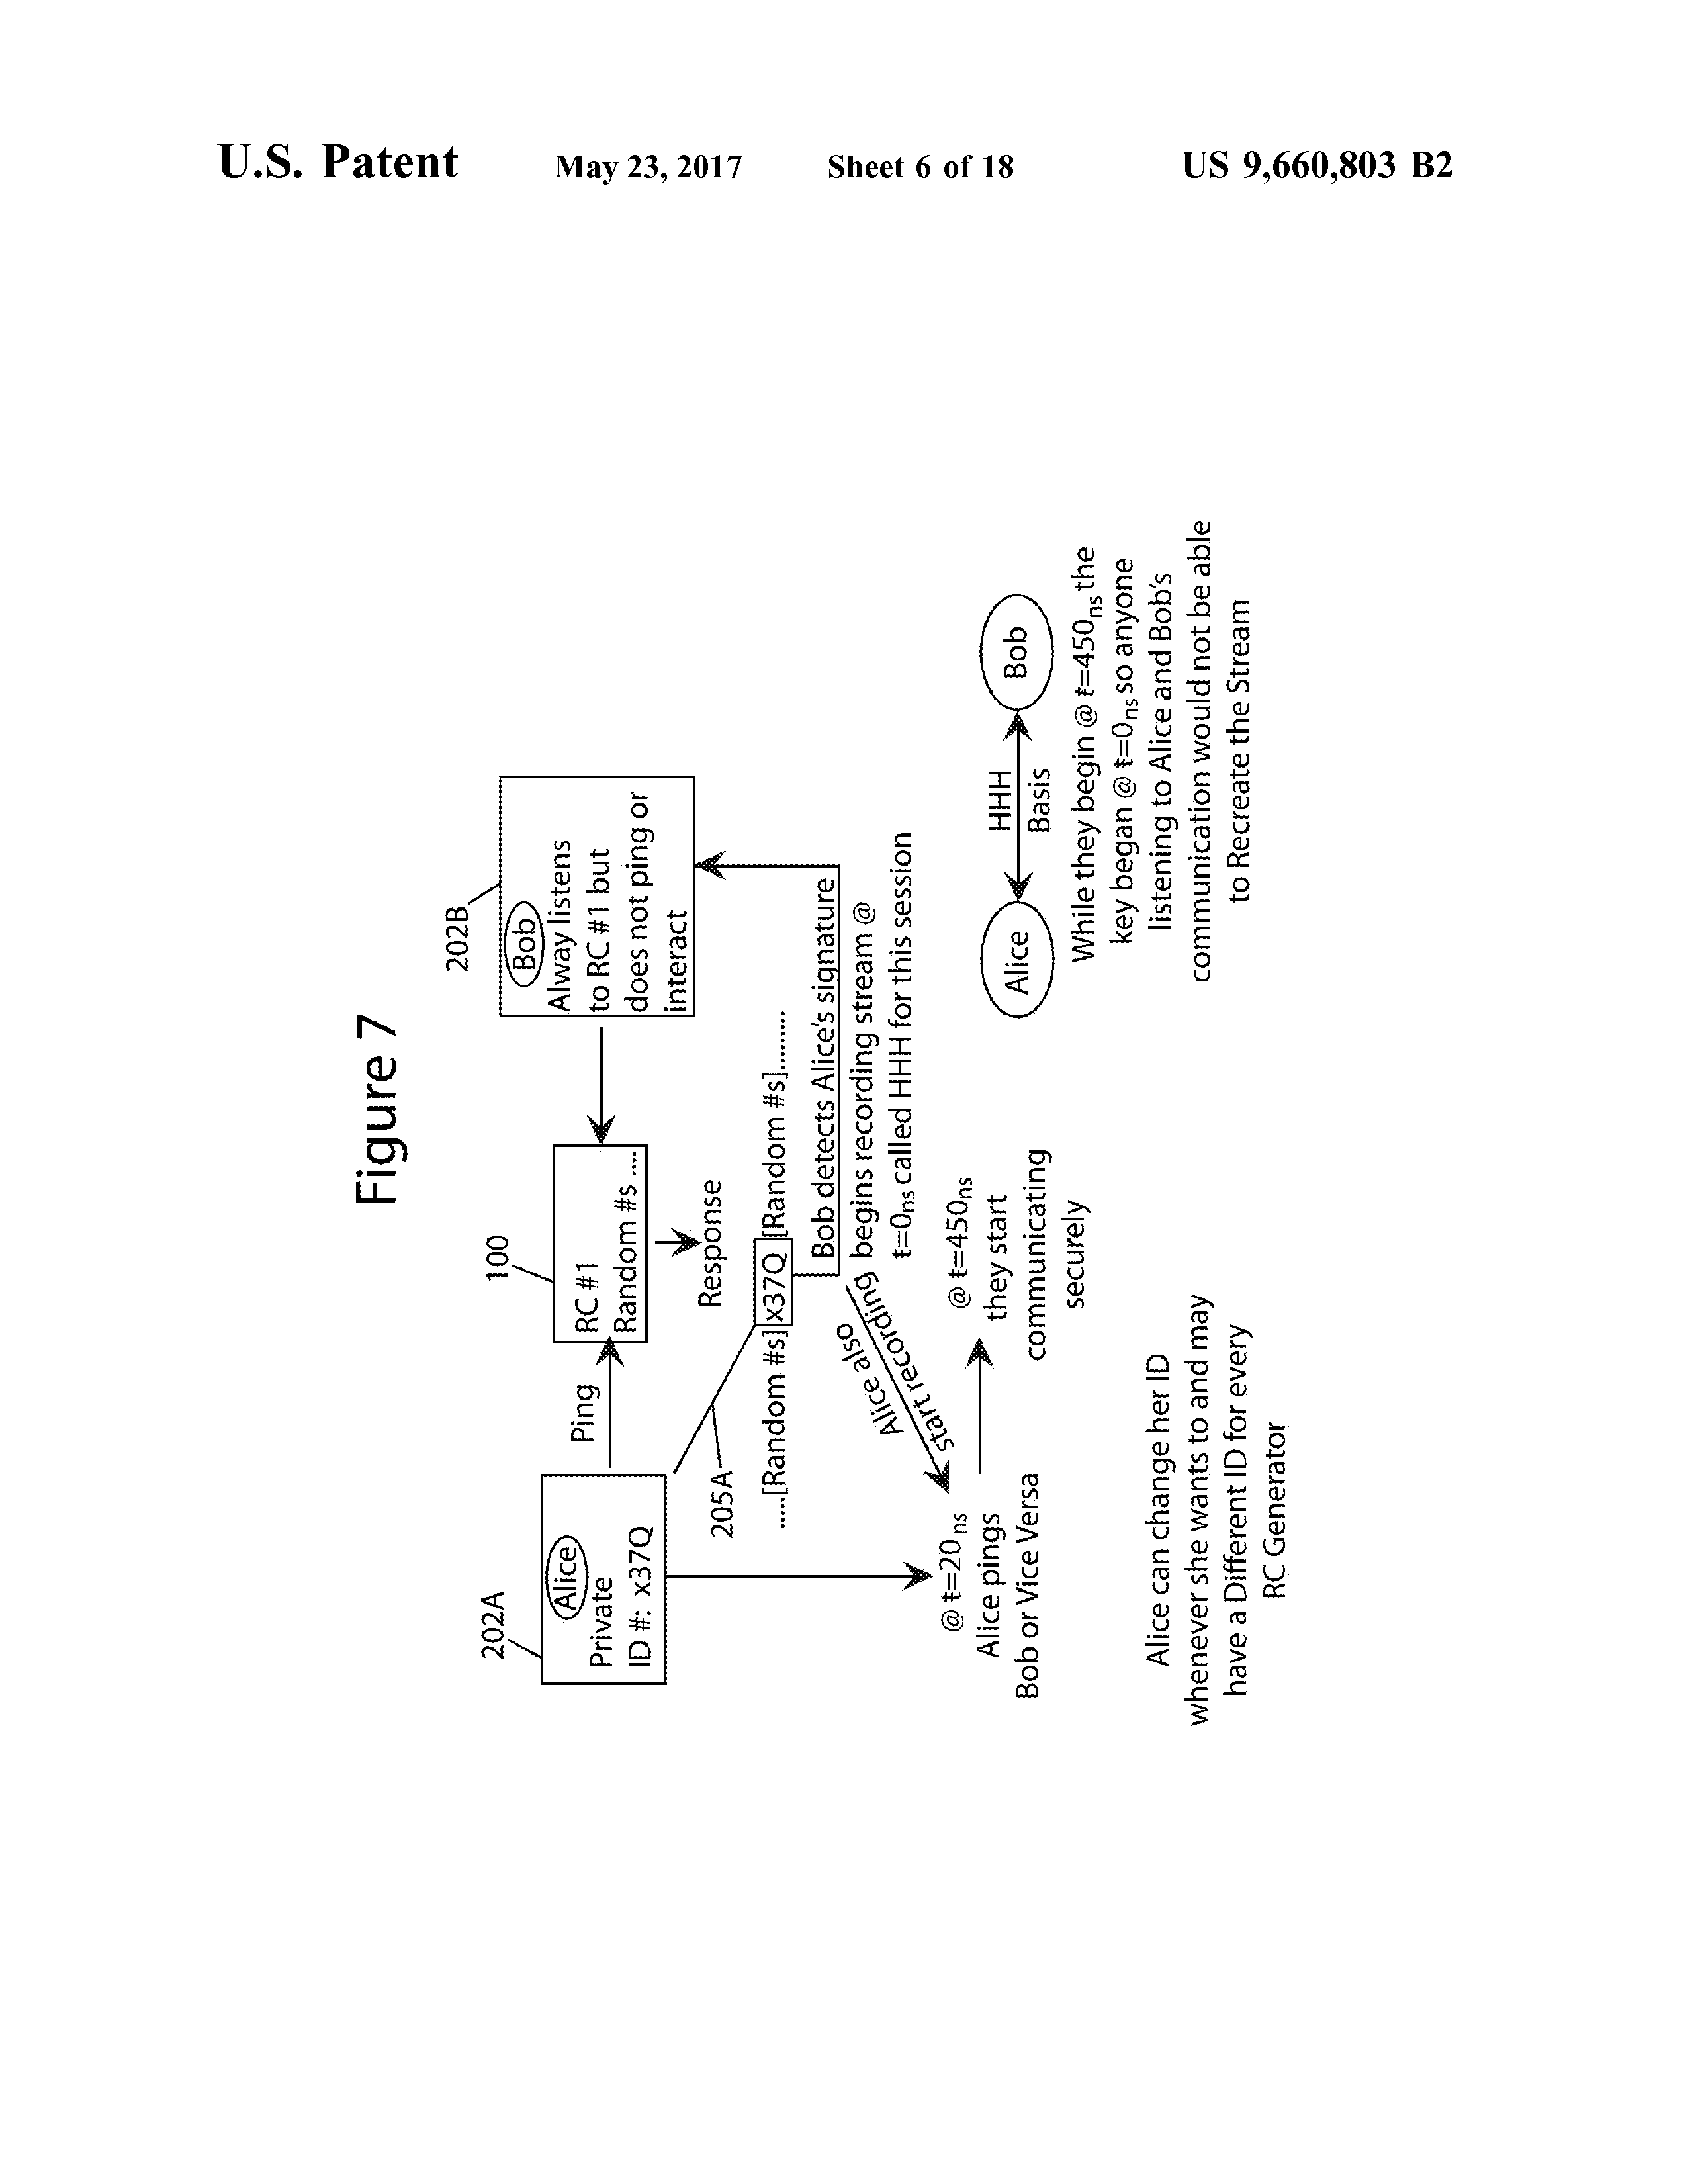 US 9660803 B2 - Device And Method For Resonant Cryptography